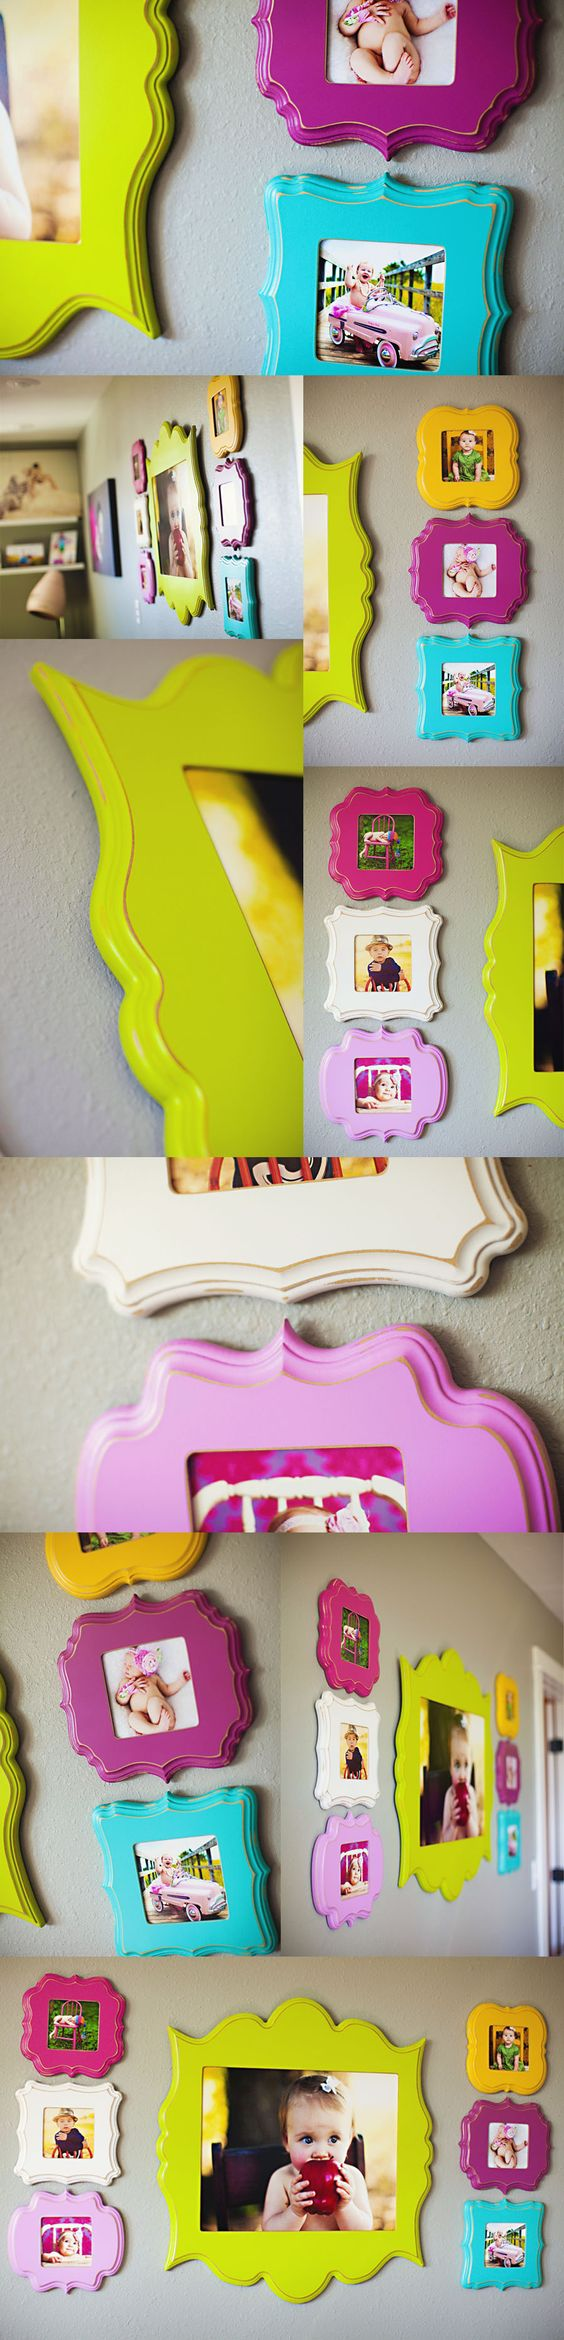 Need to find frames like this for Lydia's room!